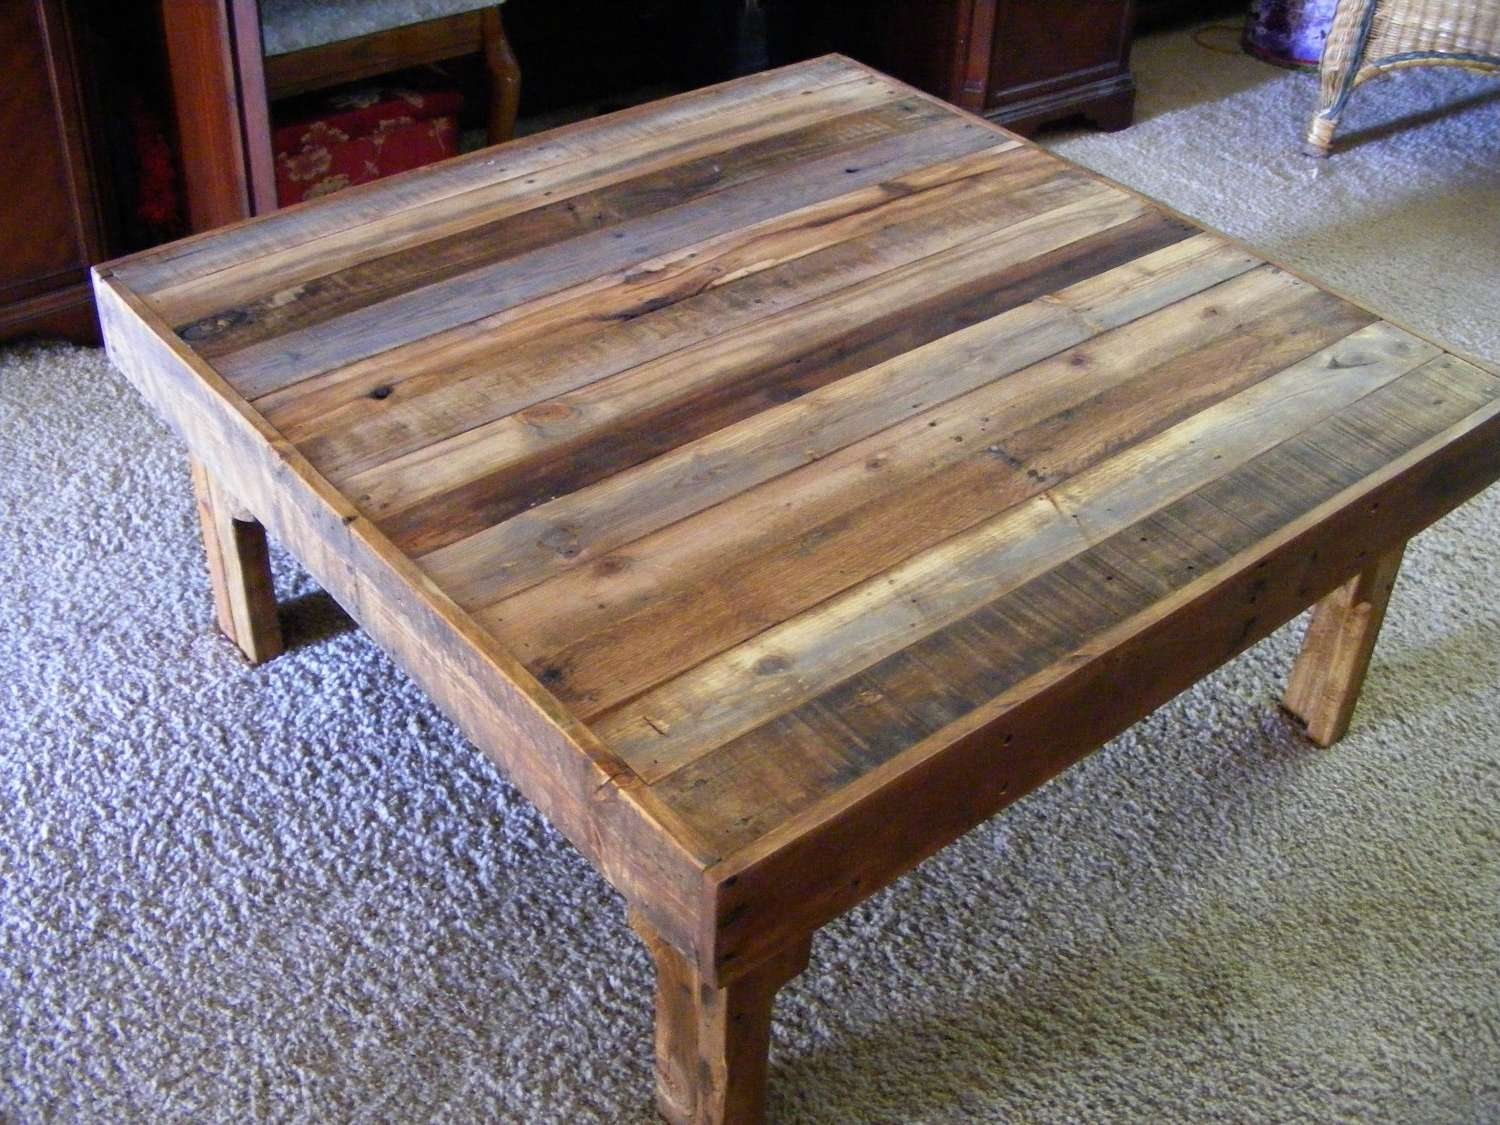 Coffee Table : Amazing Reclaimed Wood End Table Wood Block Coffee Regarding Trendy Hardwood Coffee Tables With Storage (View 3 of 20)